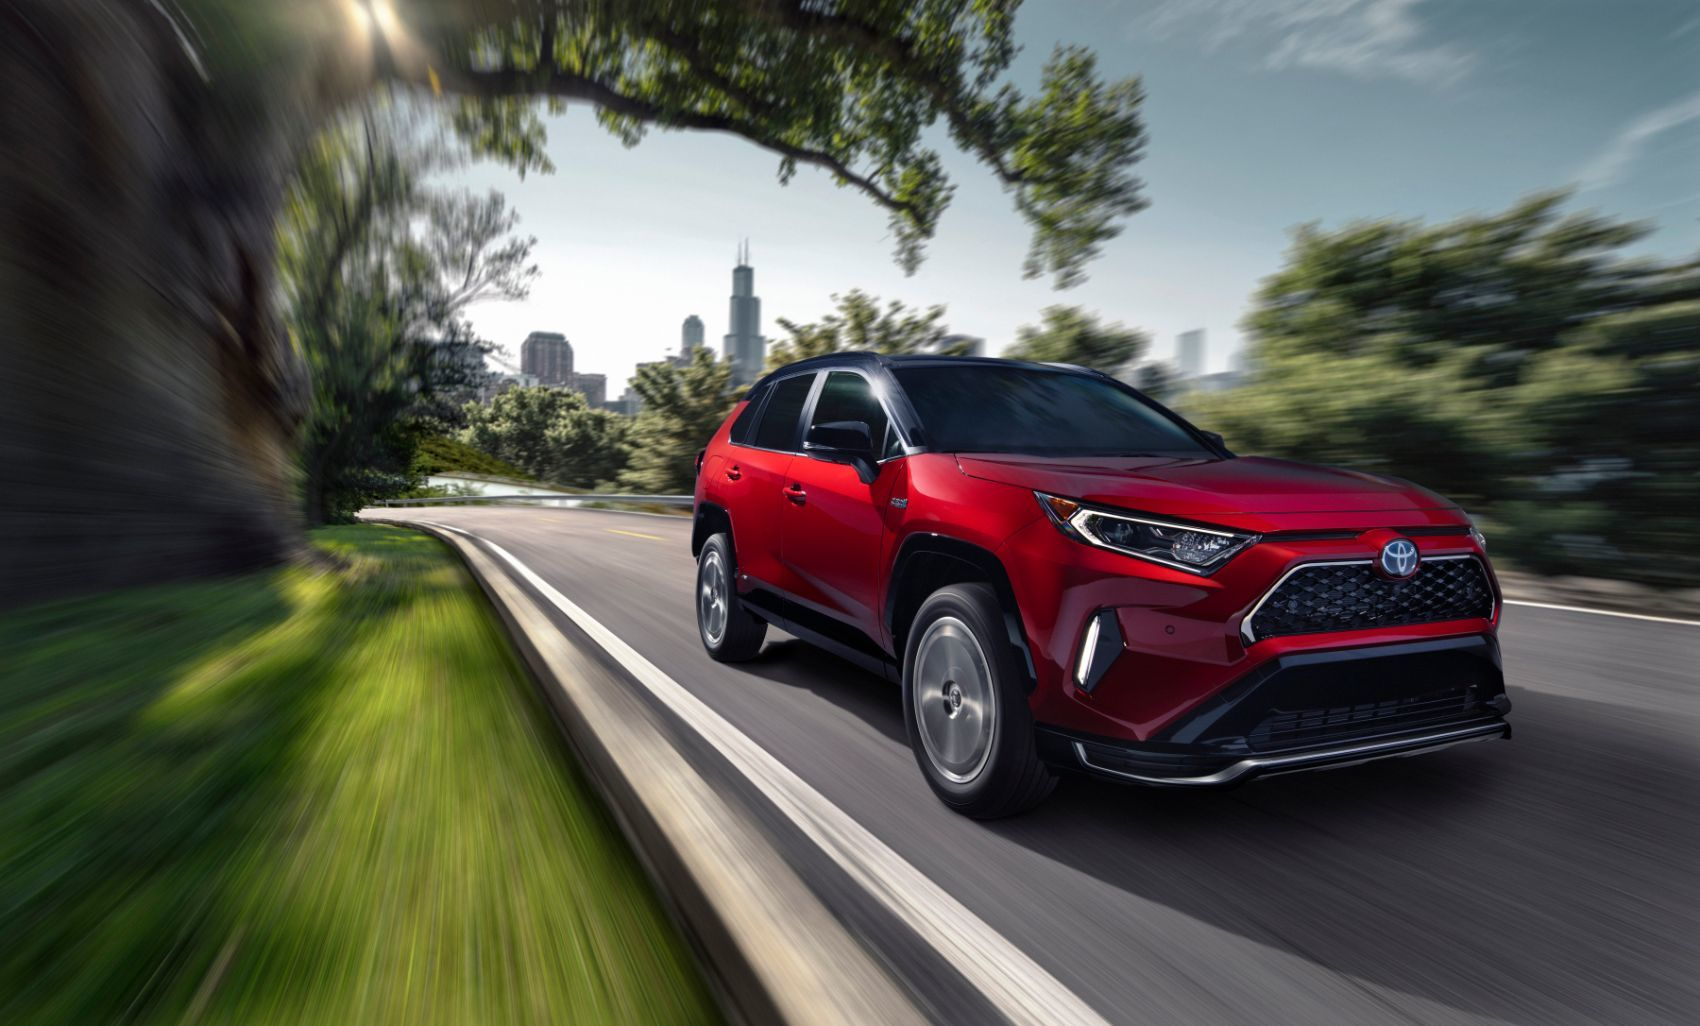 2021 Toyota RAV4 Prime: Quick but Detailed Look at the Trim Levels & Options